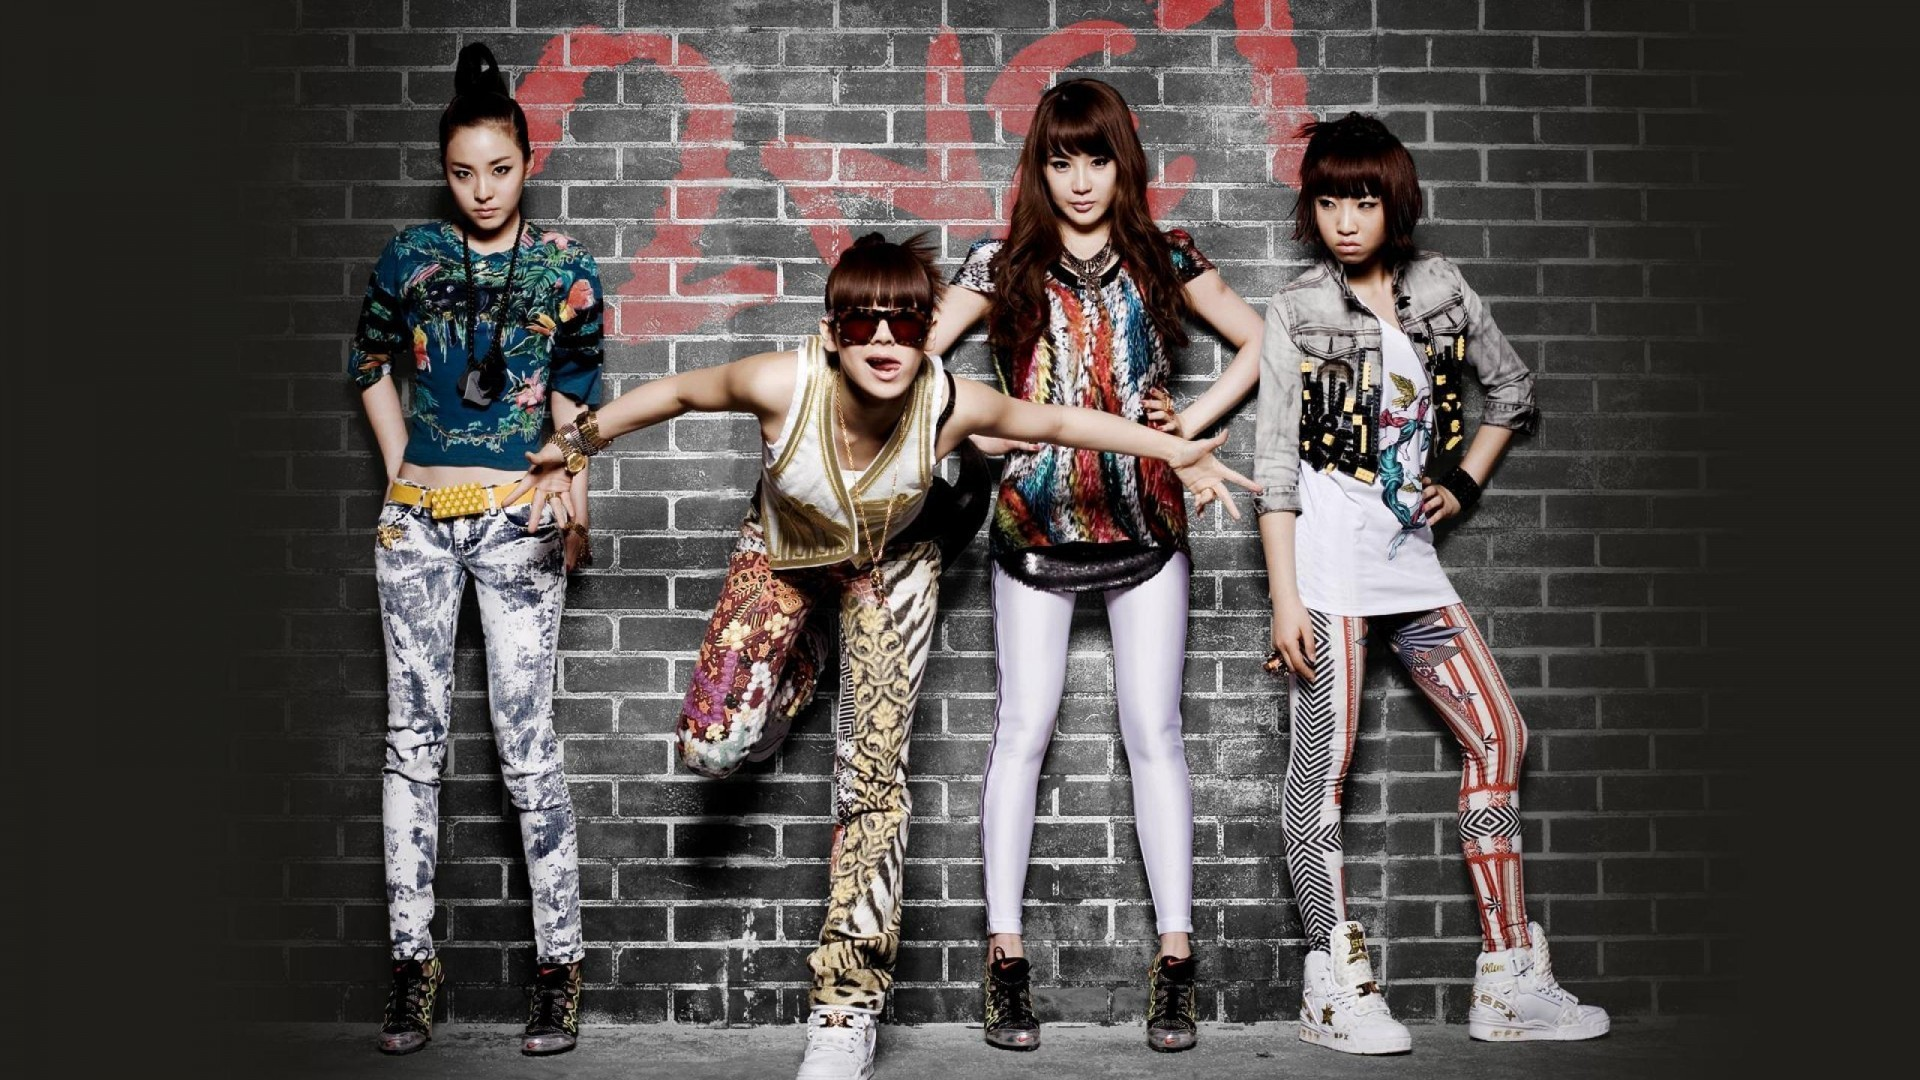 2ne1 Girls On The Wall